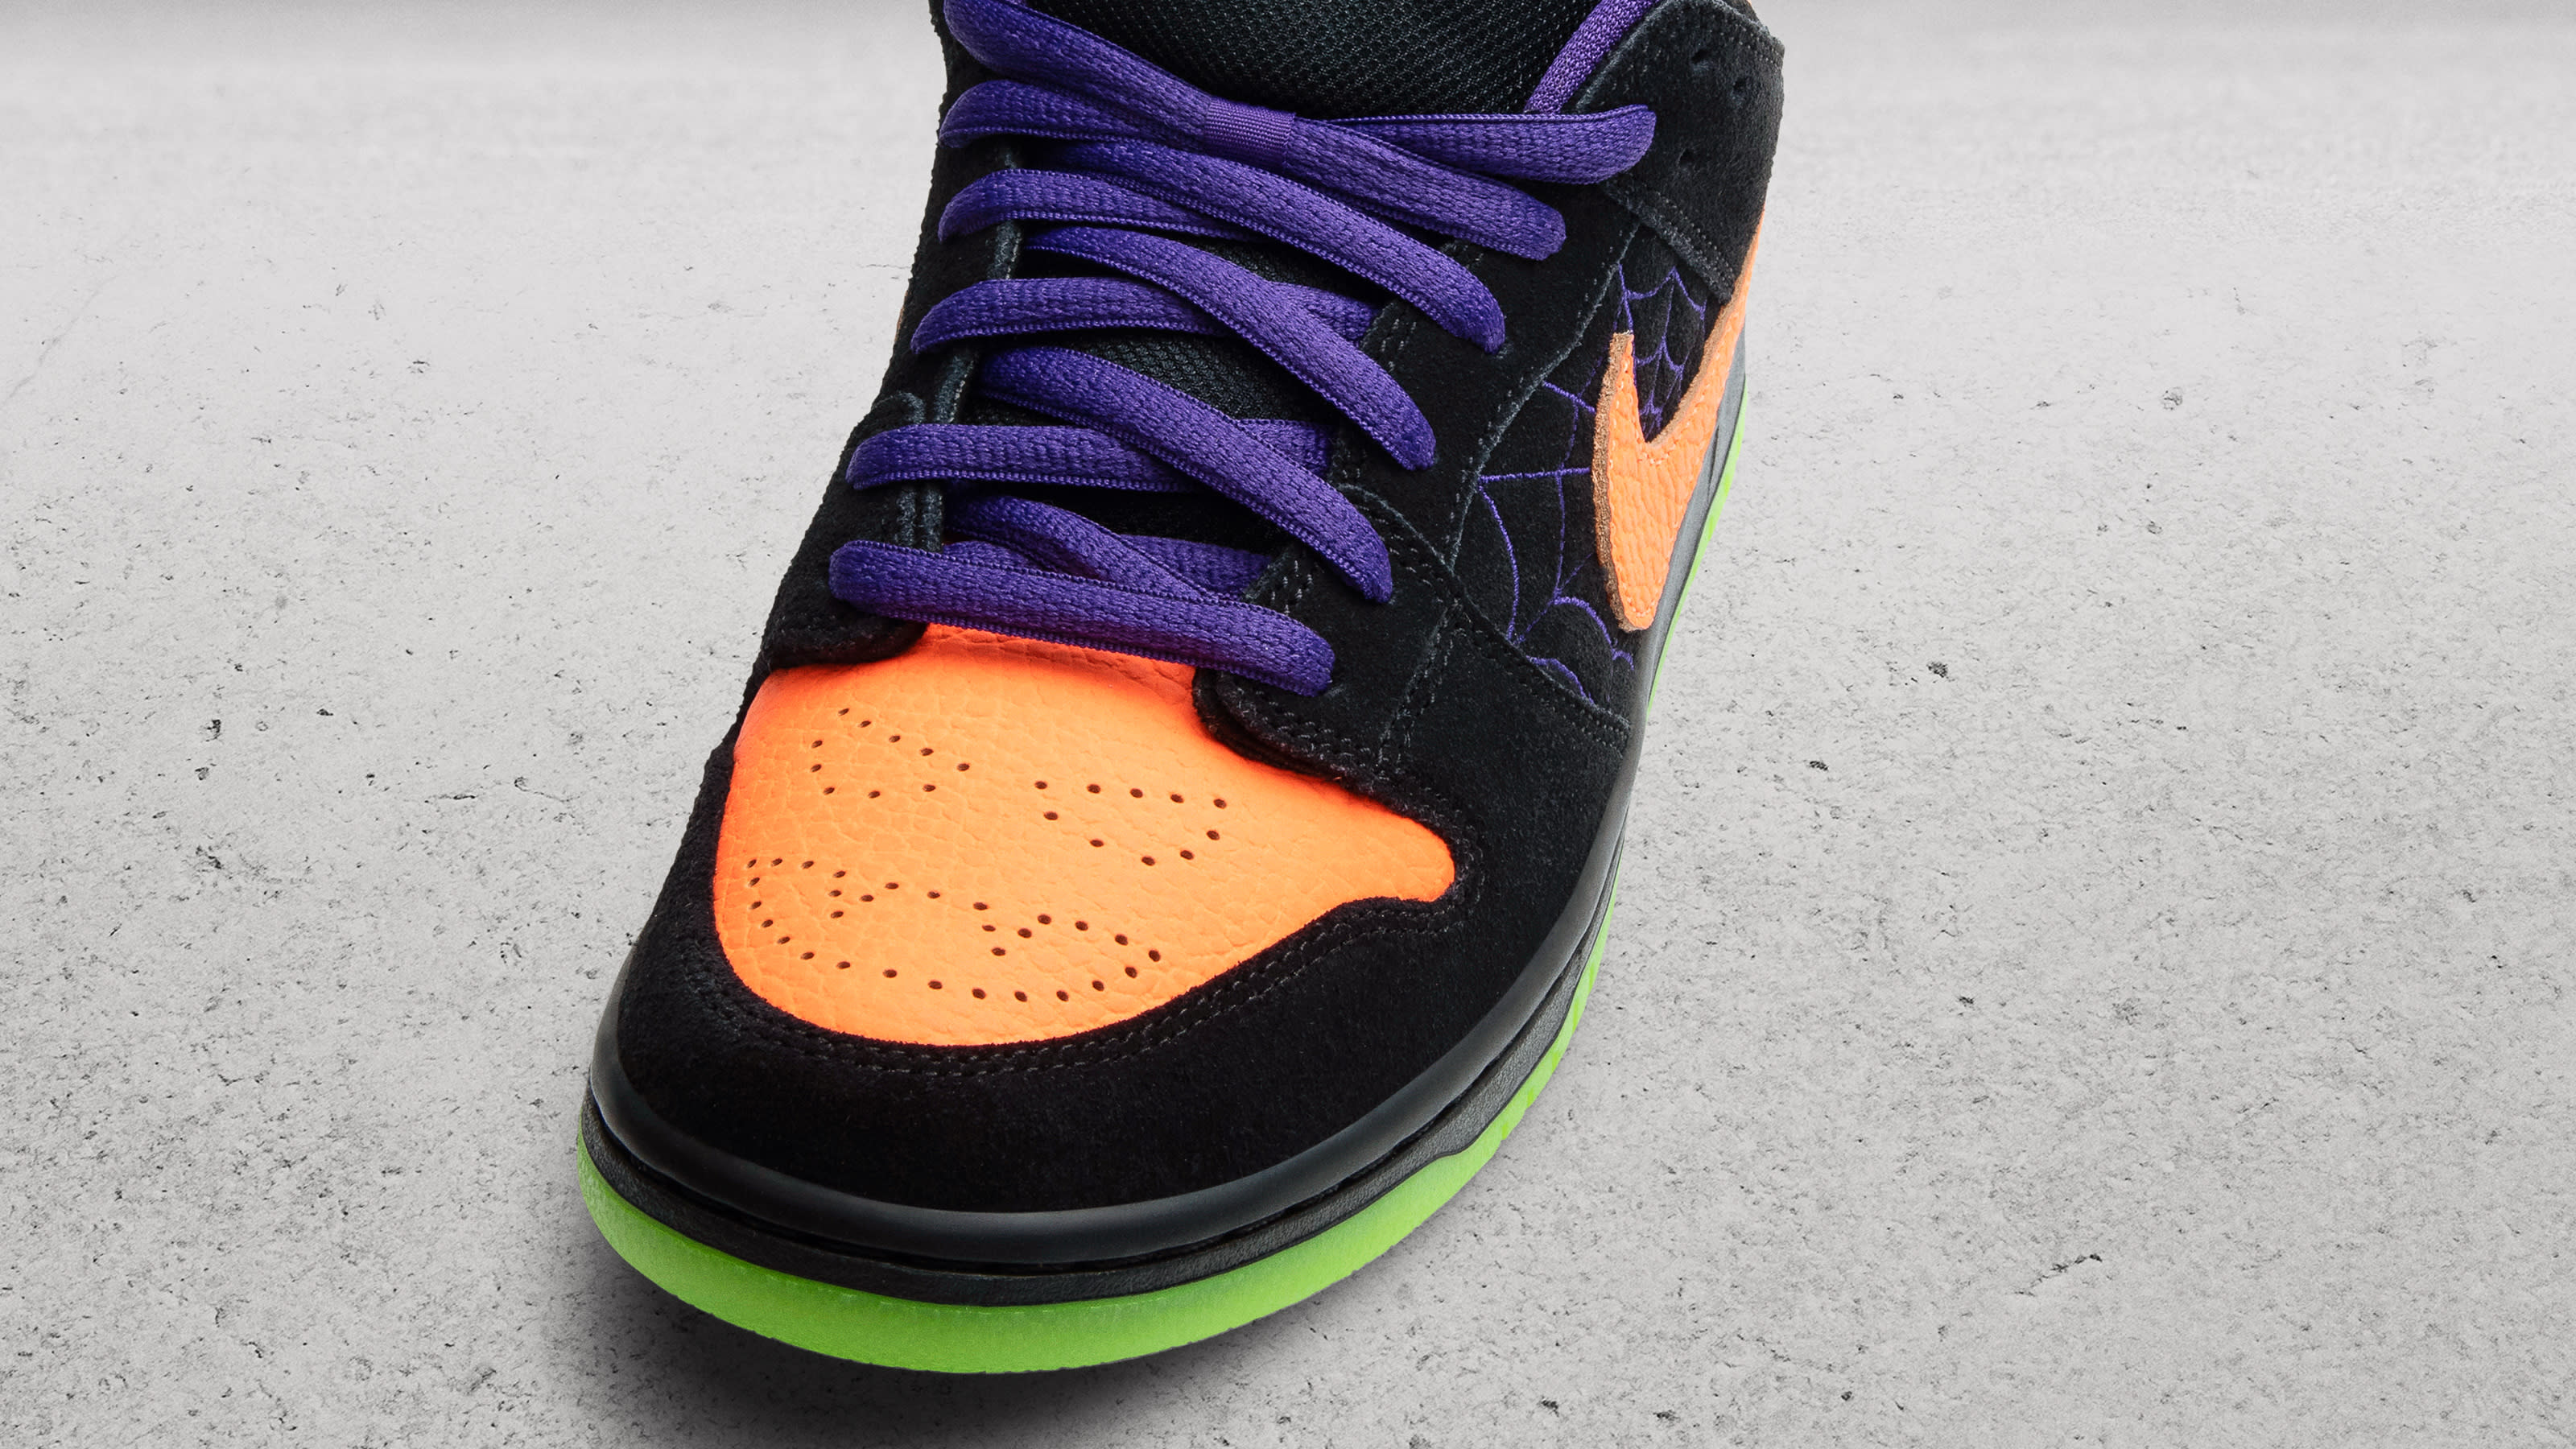 Nike SB Dunk Low 'Night of Mischief' Release Date | Sole